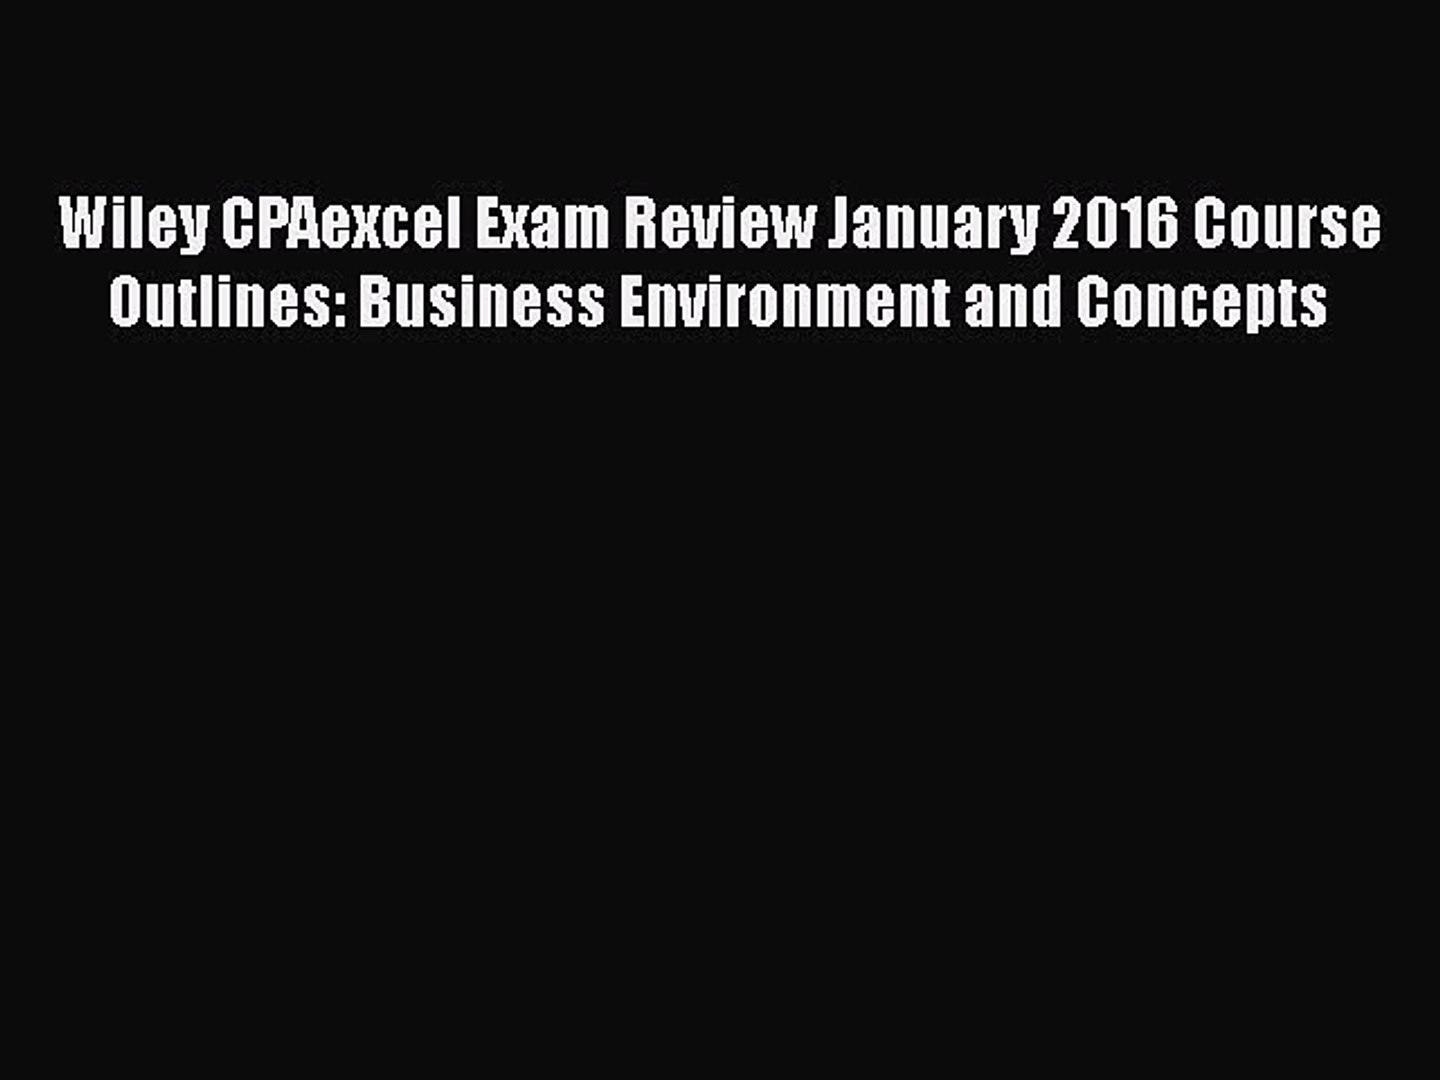 Business Environment and Concepts Wiley CPAexcel Exam Review 2015 Study Guide July